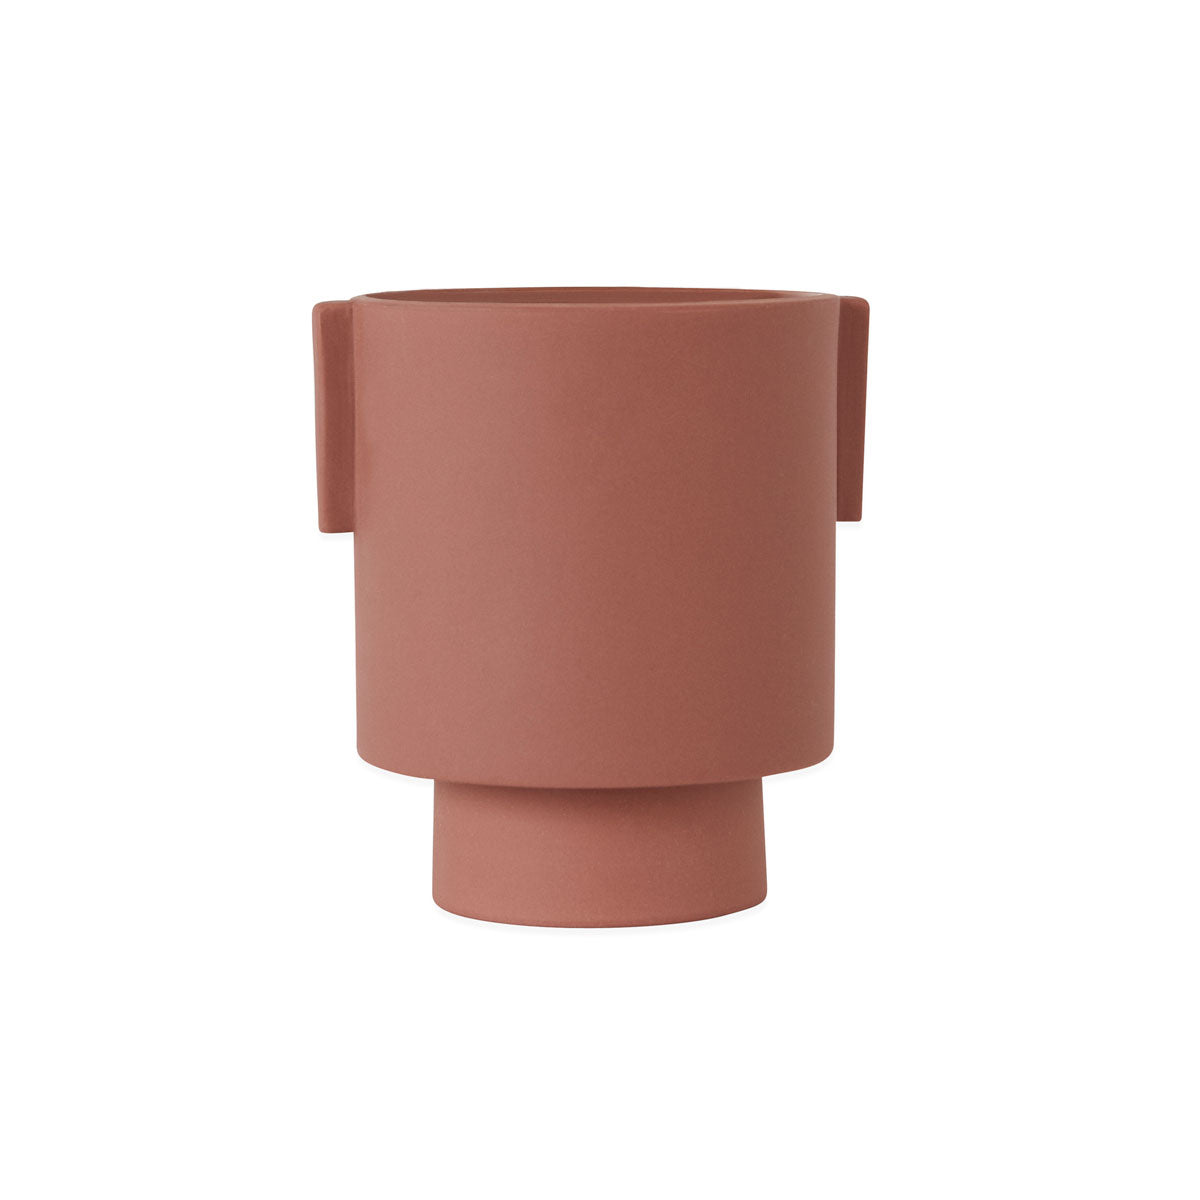 Inka Kana Pot - medium Sienna ceramic OYOY living design